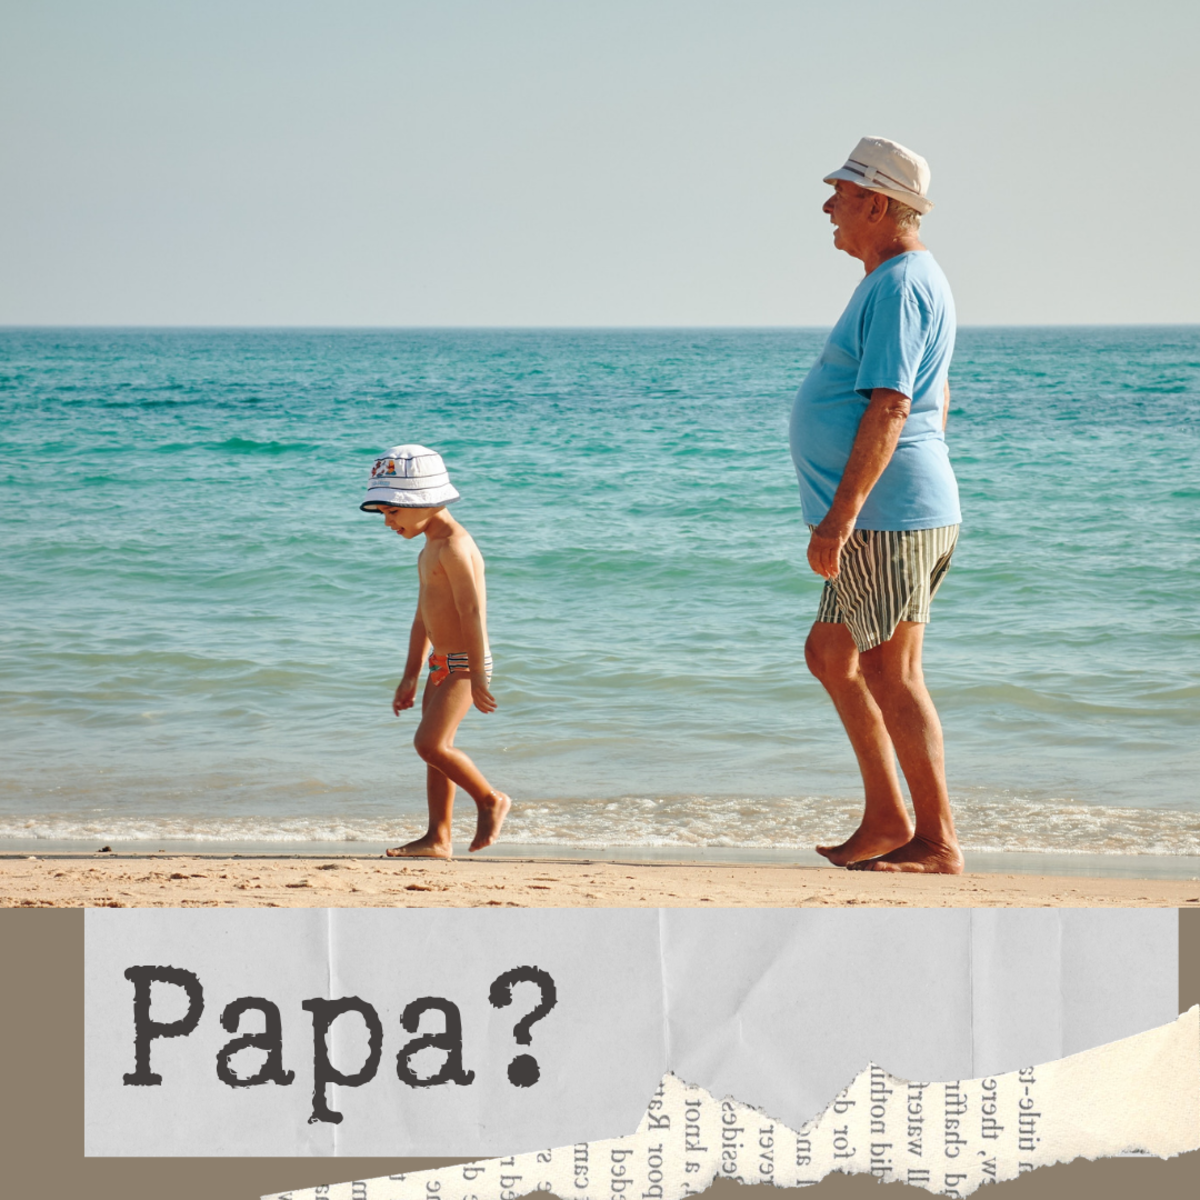 Are you a Papa?